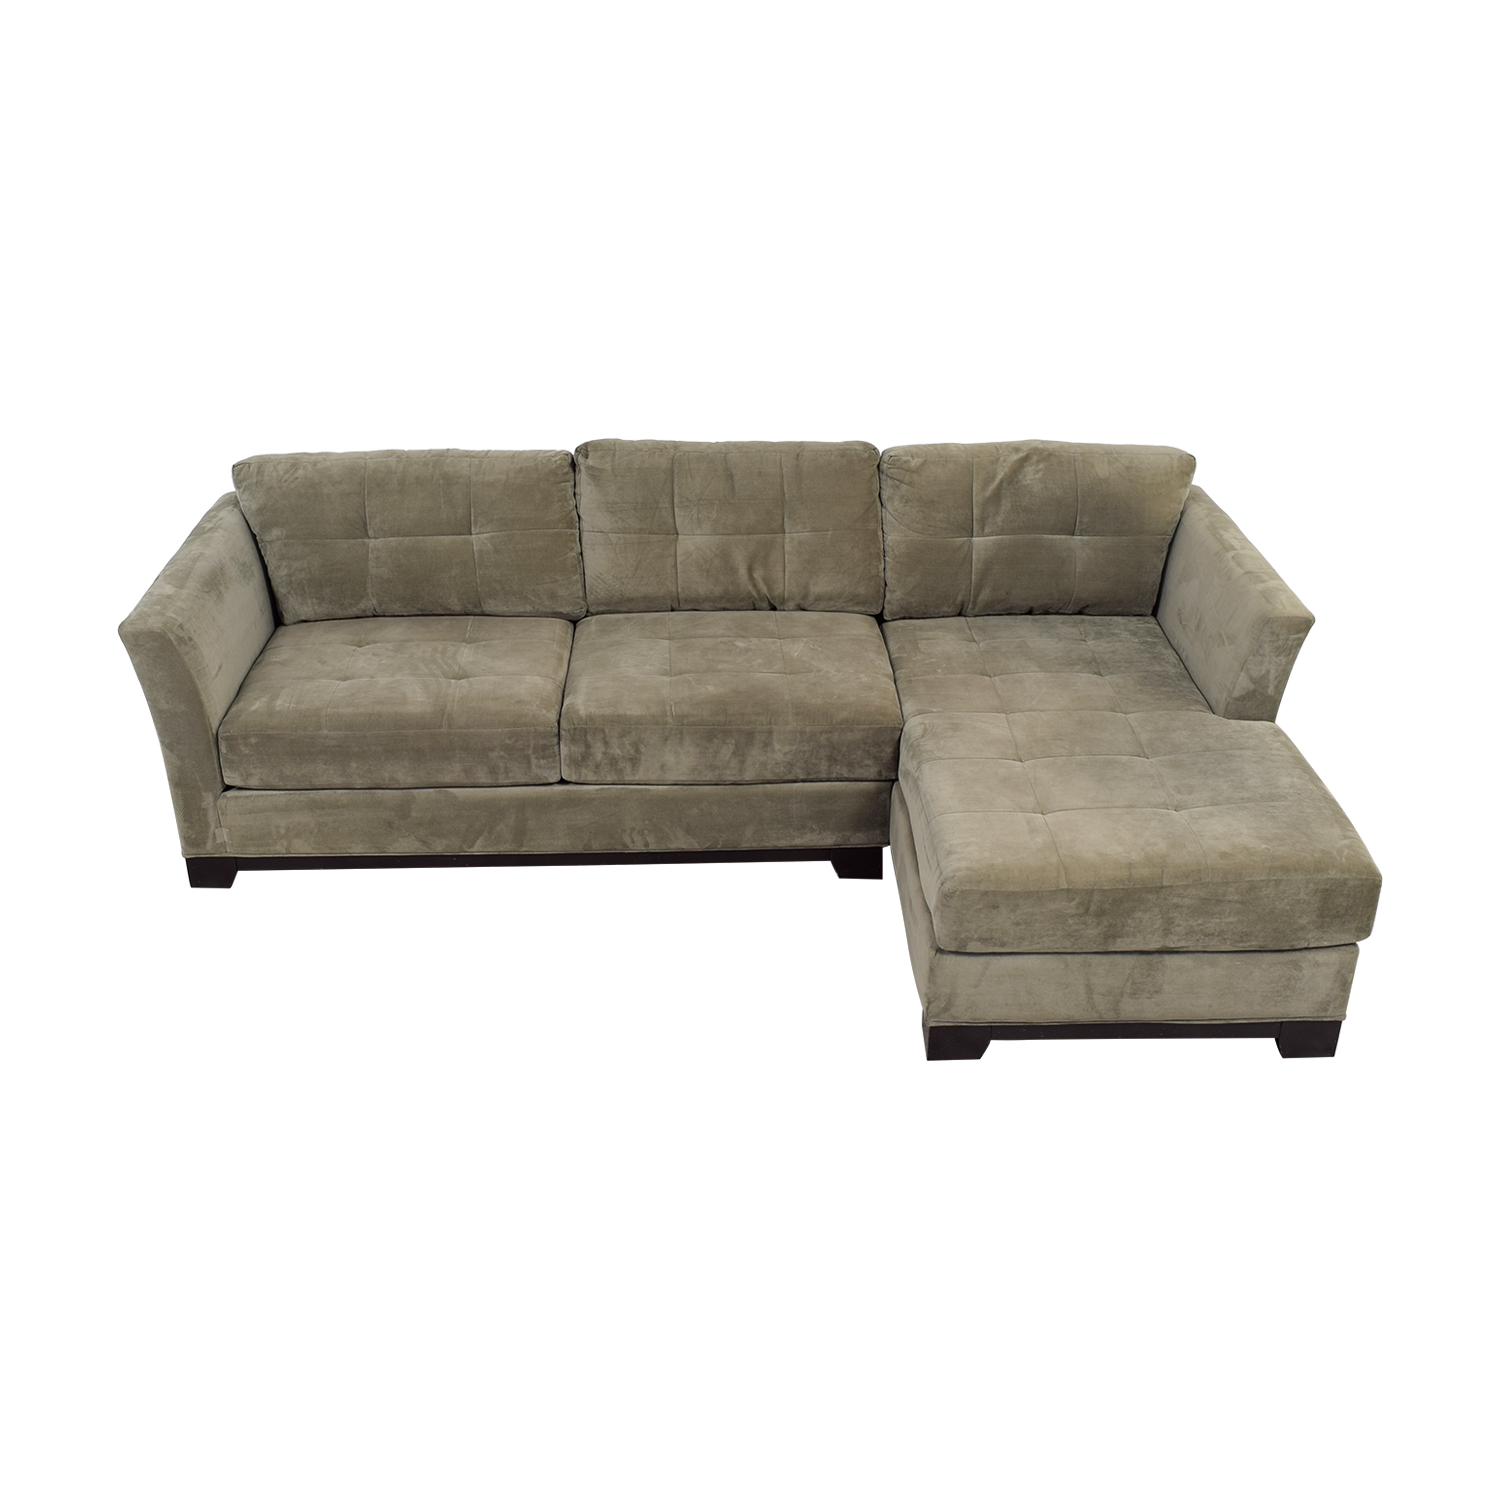 macy s elliot sofa stores los angeles 79 off 39s grey microfiber semi tufted